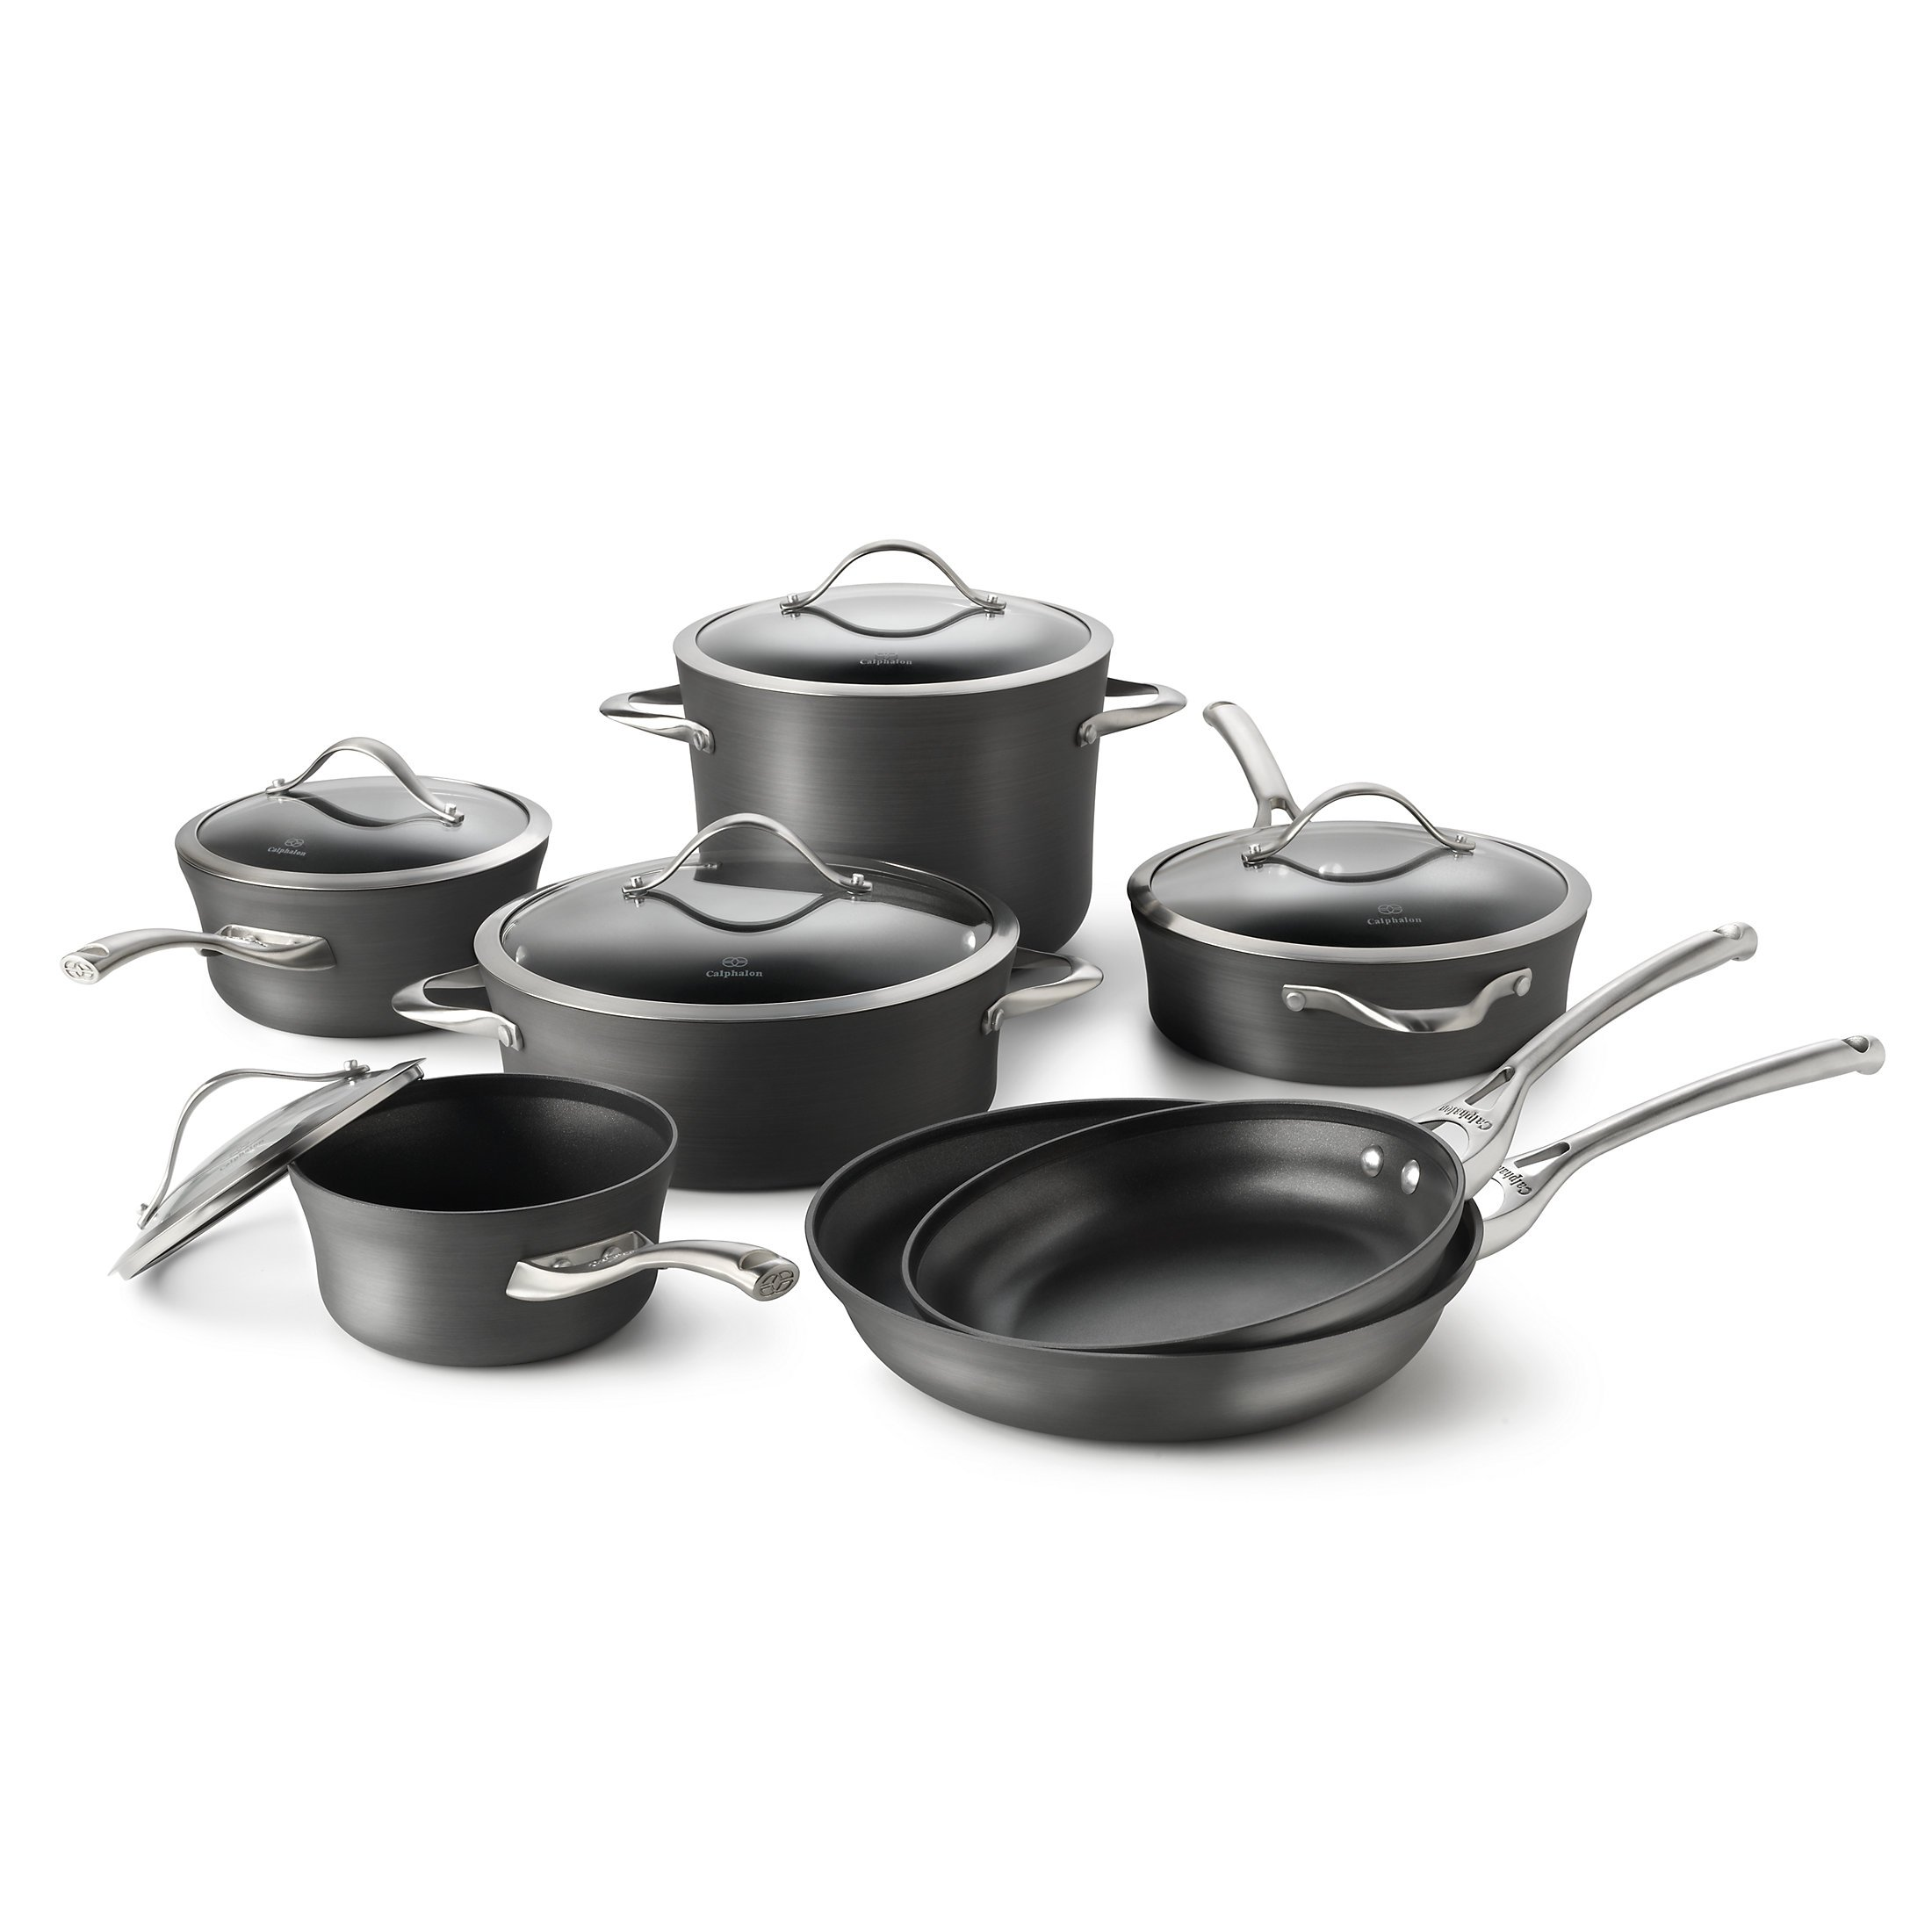 Calphalon 1876788 Contemporary Hard-Anodized Aluminum Nonstick Cookware Set, 12-Piece, Black